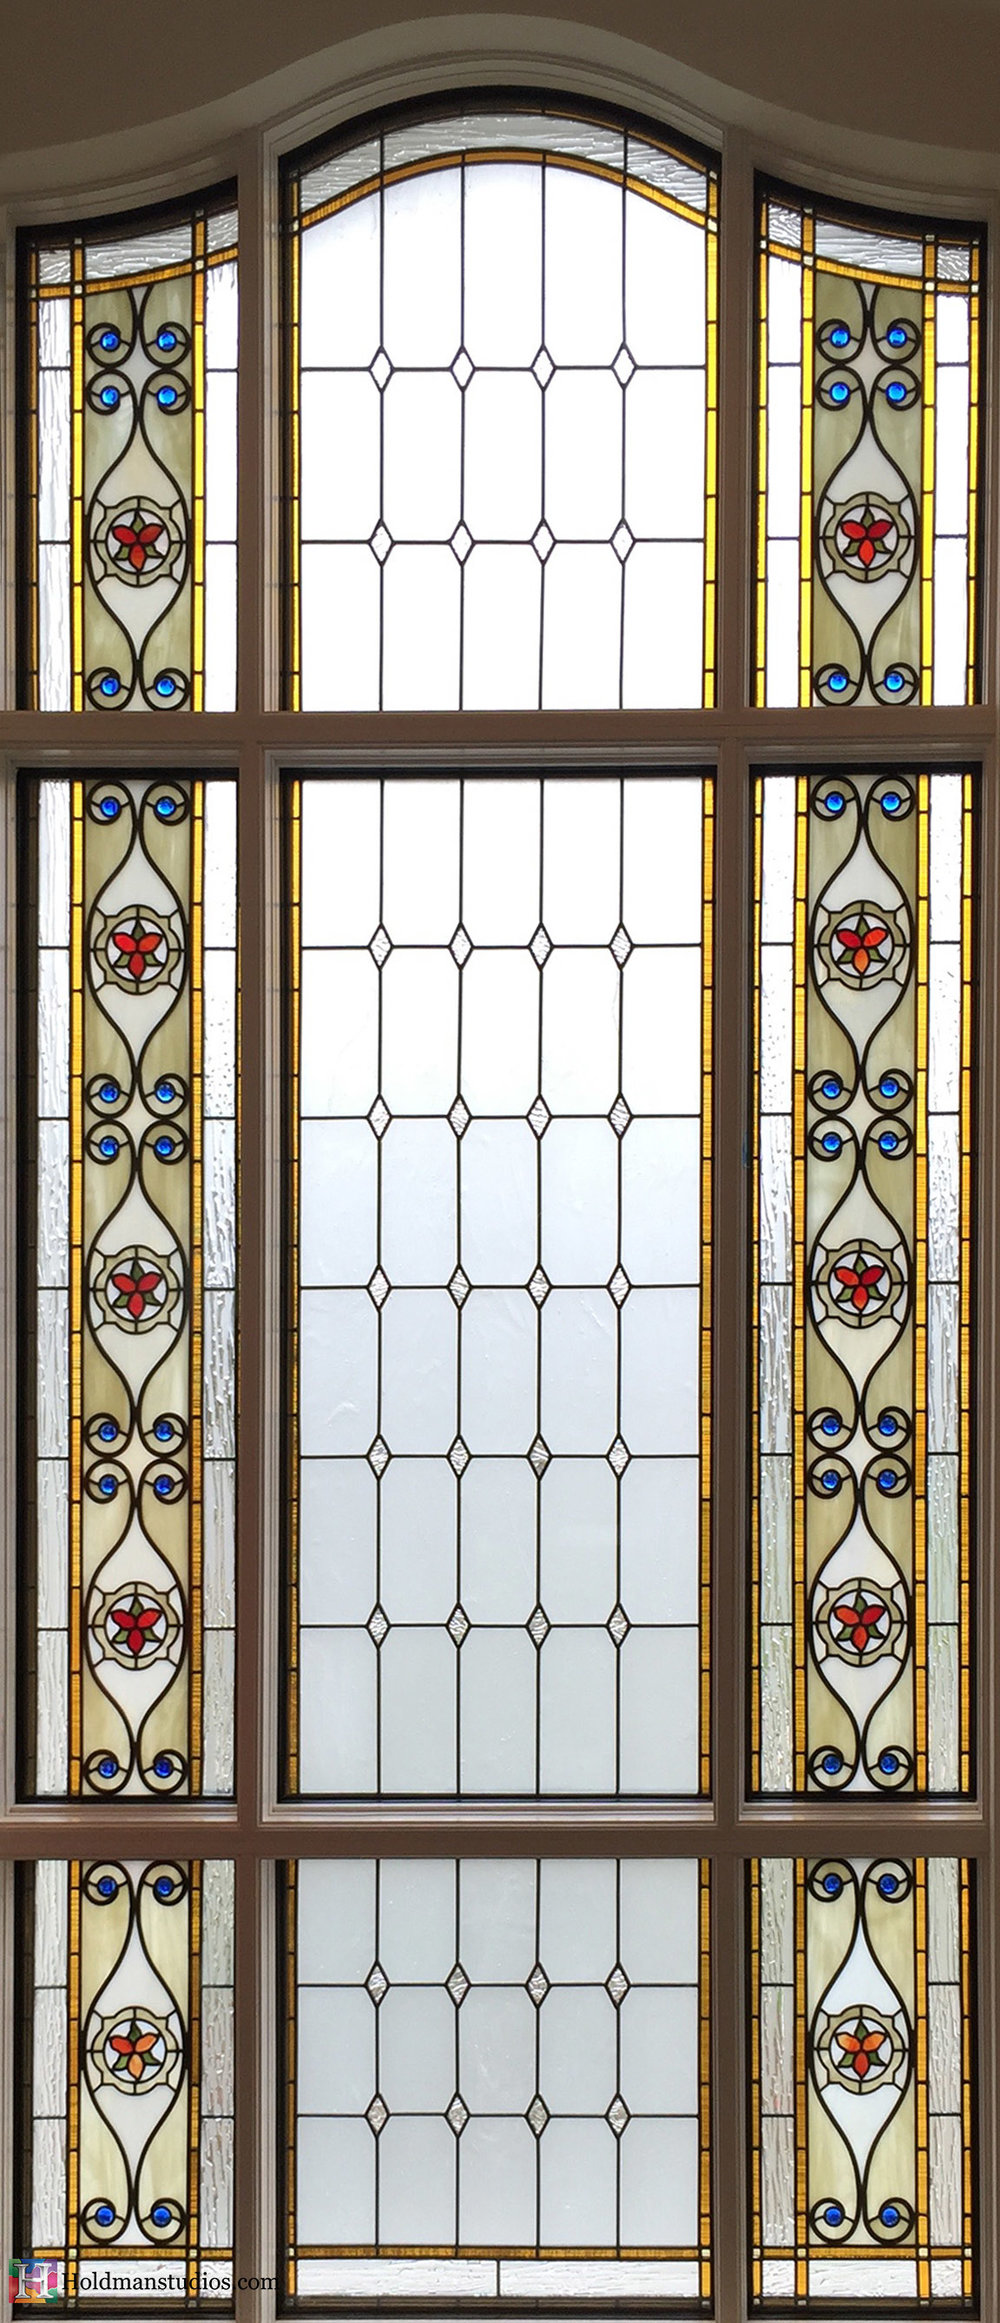 Holdman-Studios-Stained-Art-Glass-LDS-Mormon-Temple-Tijuana-Mexico-Bougainvillea-Bugambilia-Flower-Window2.jpg